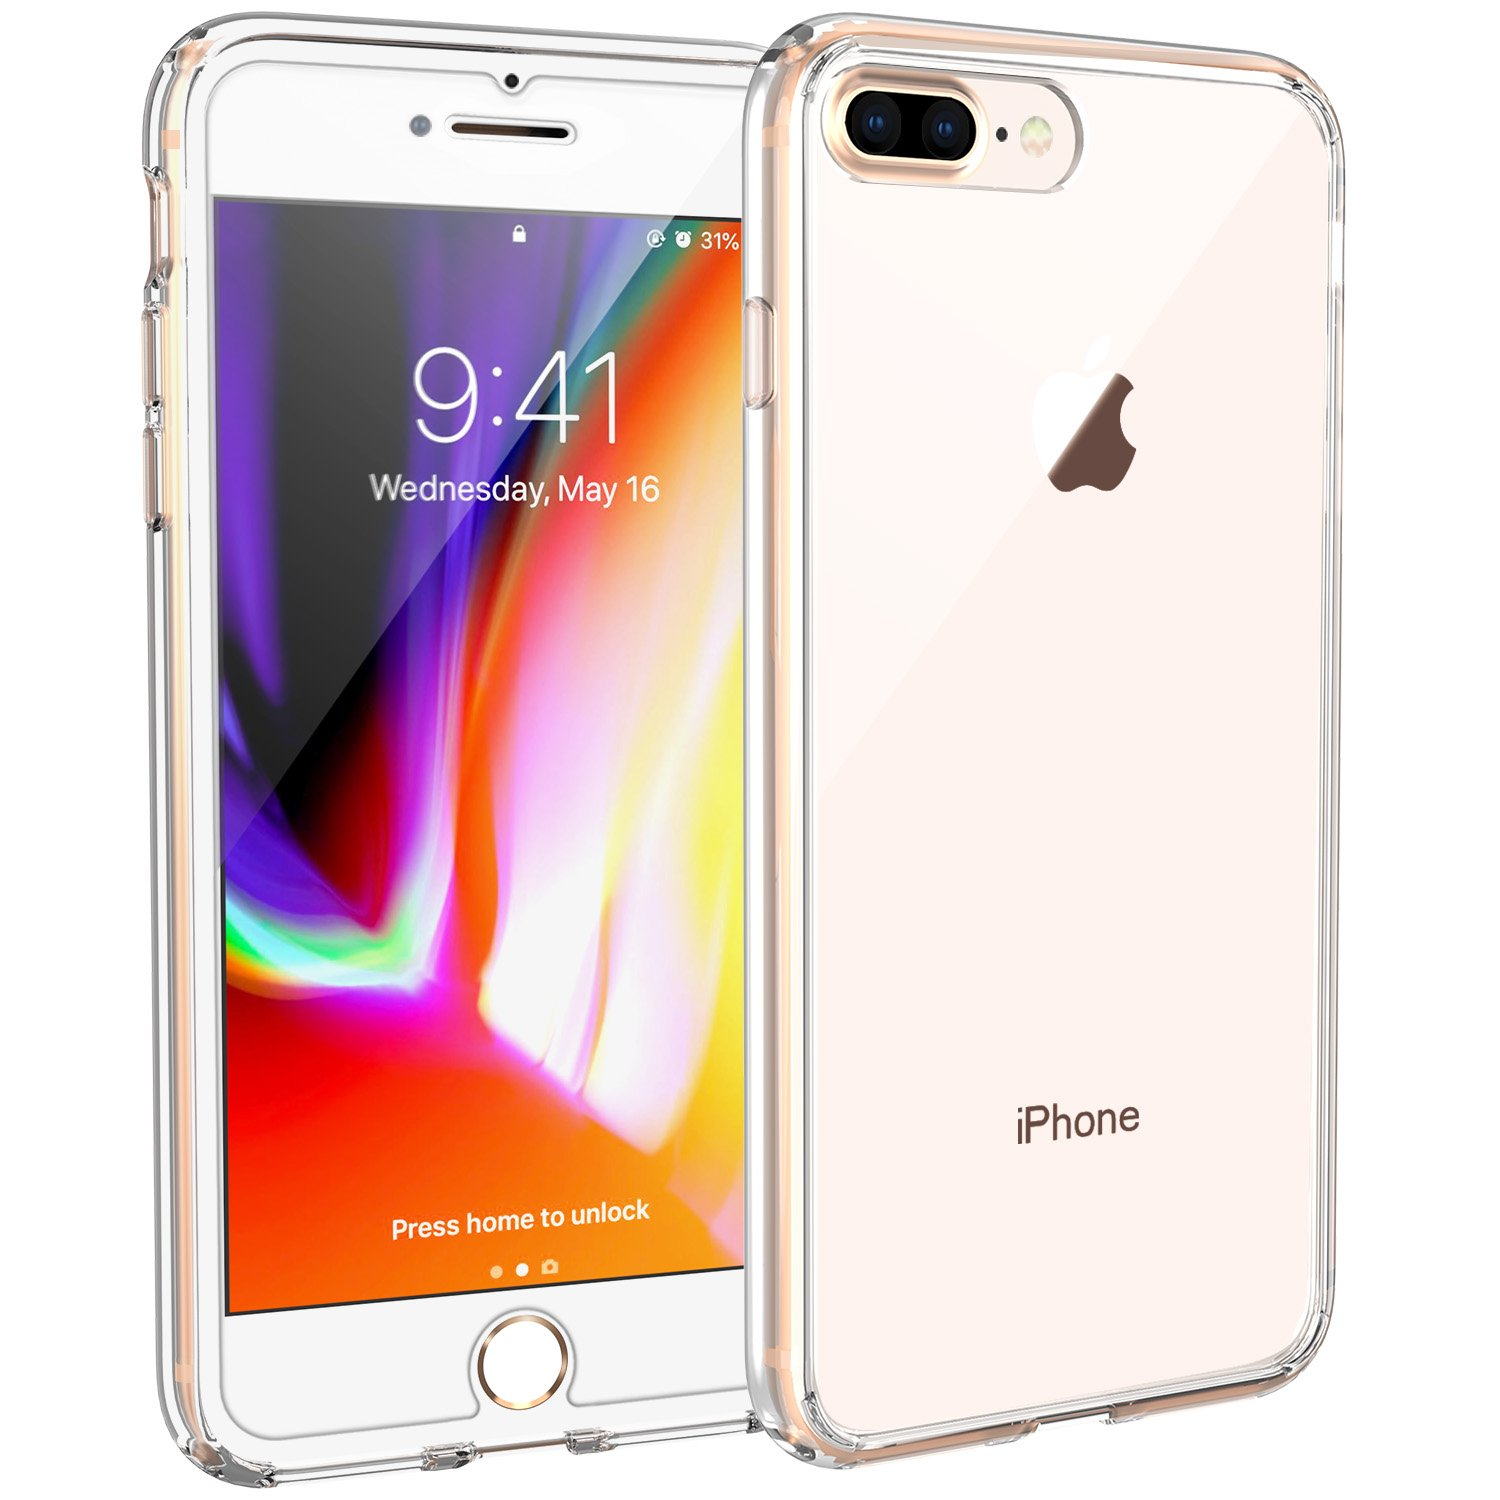 Syncwire Funda iPhone 8 Plus, Funda iPhone 7 Plus -[UltraRock] Funda Protectora para iPhone 7 Plus/8 Plus con protección Avanzada Anti caídas y con ...